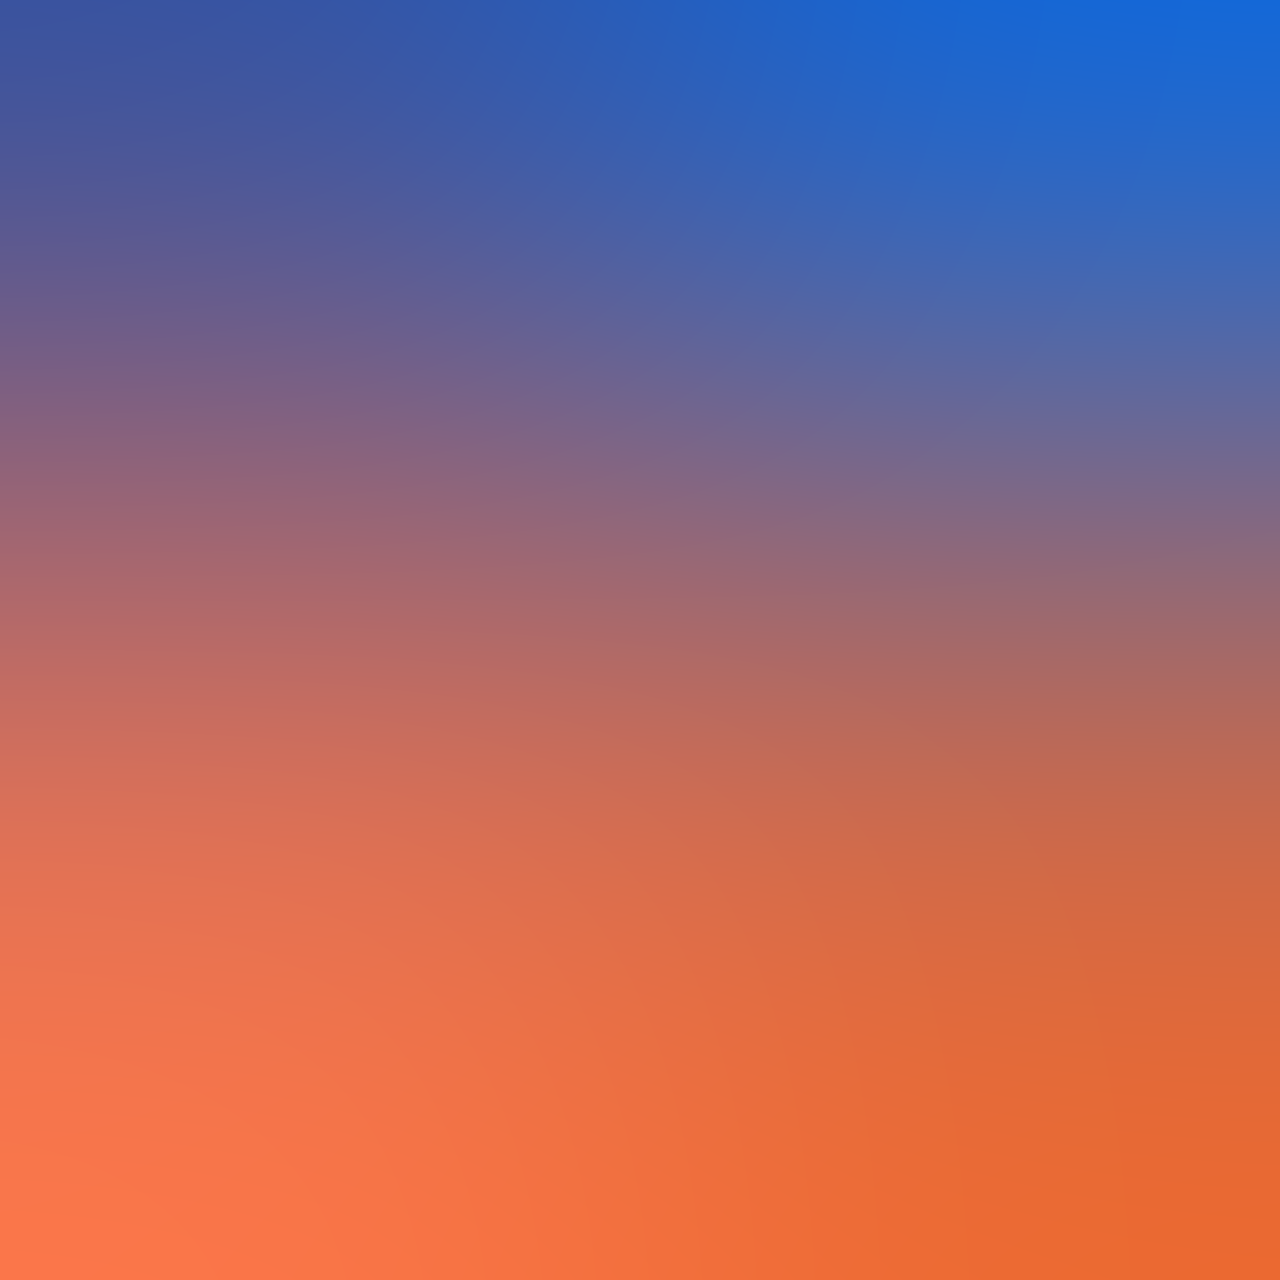 colorful gradients Photo Solid color backgrounds